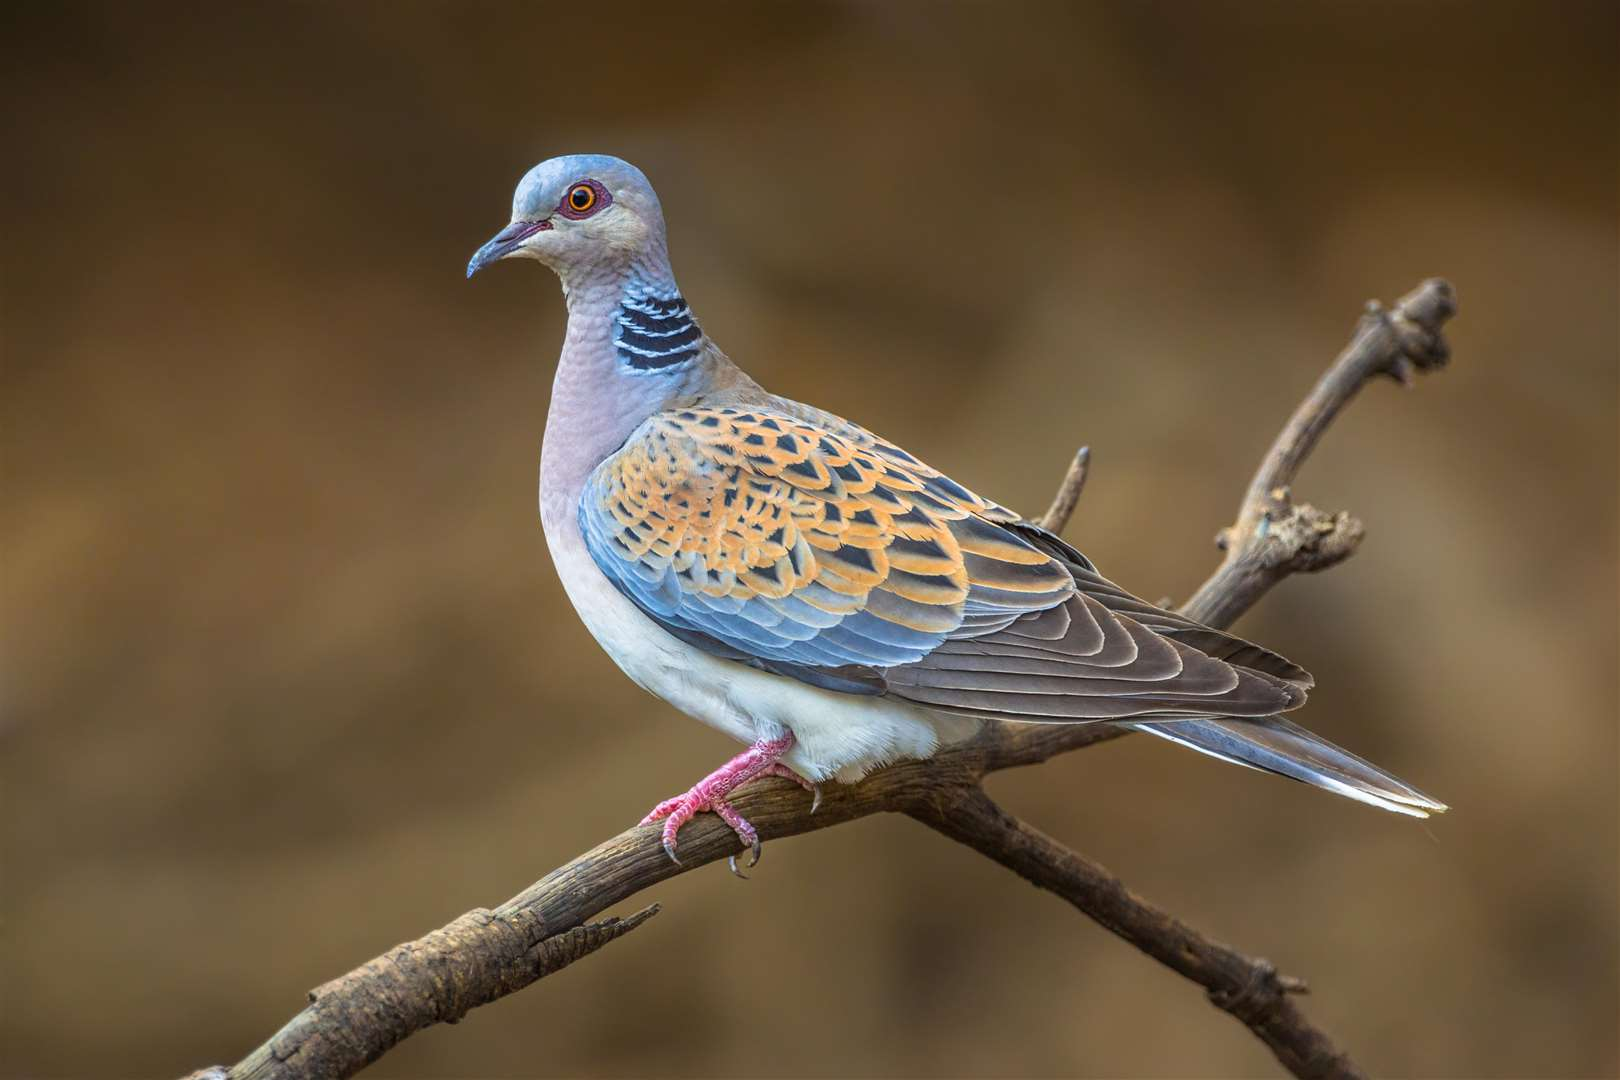 Turtle dove (Streptopelia turtur) perched on a branch (6249503)